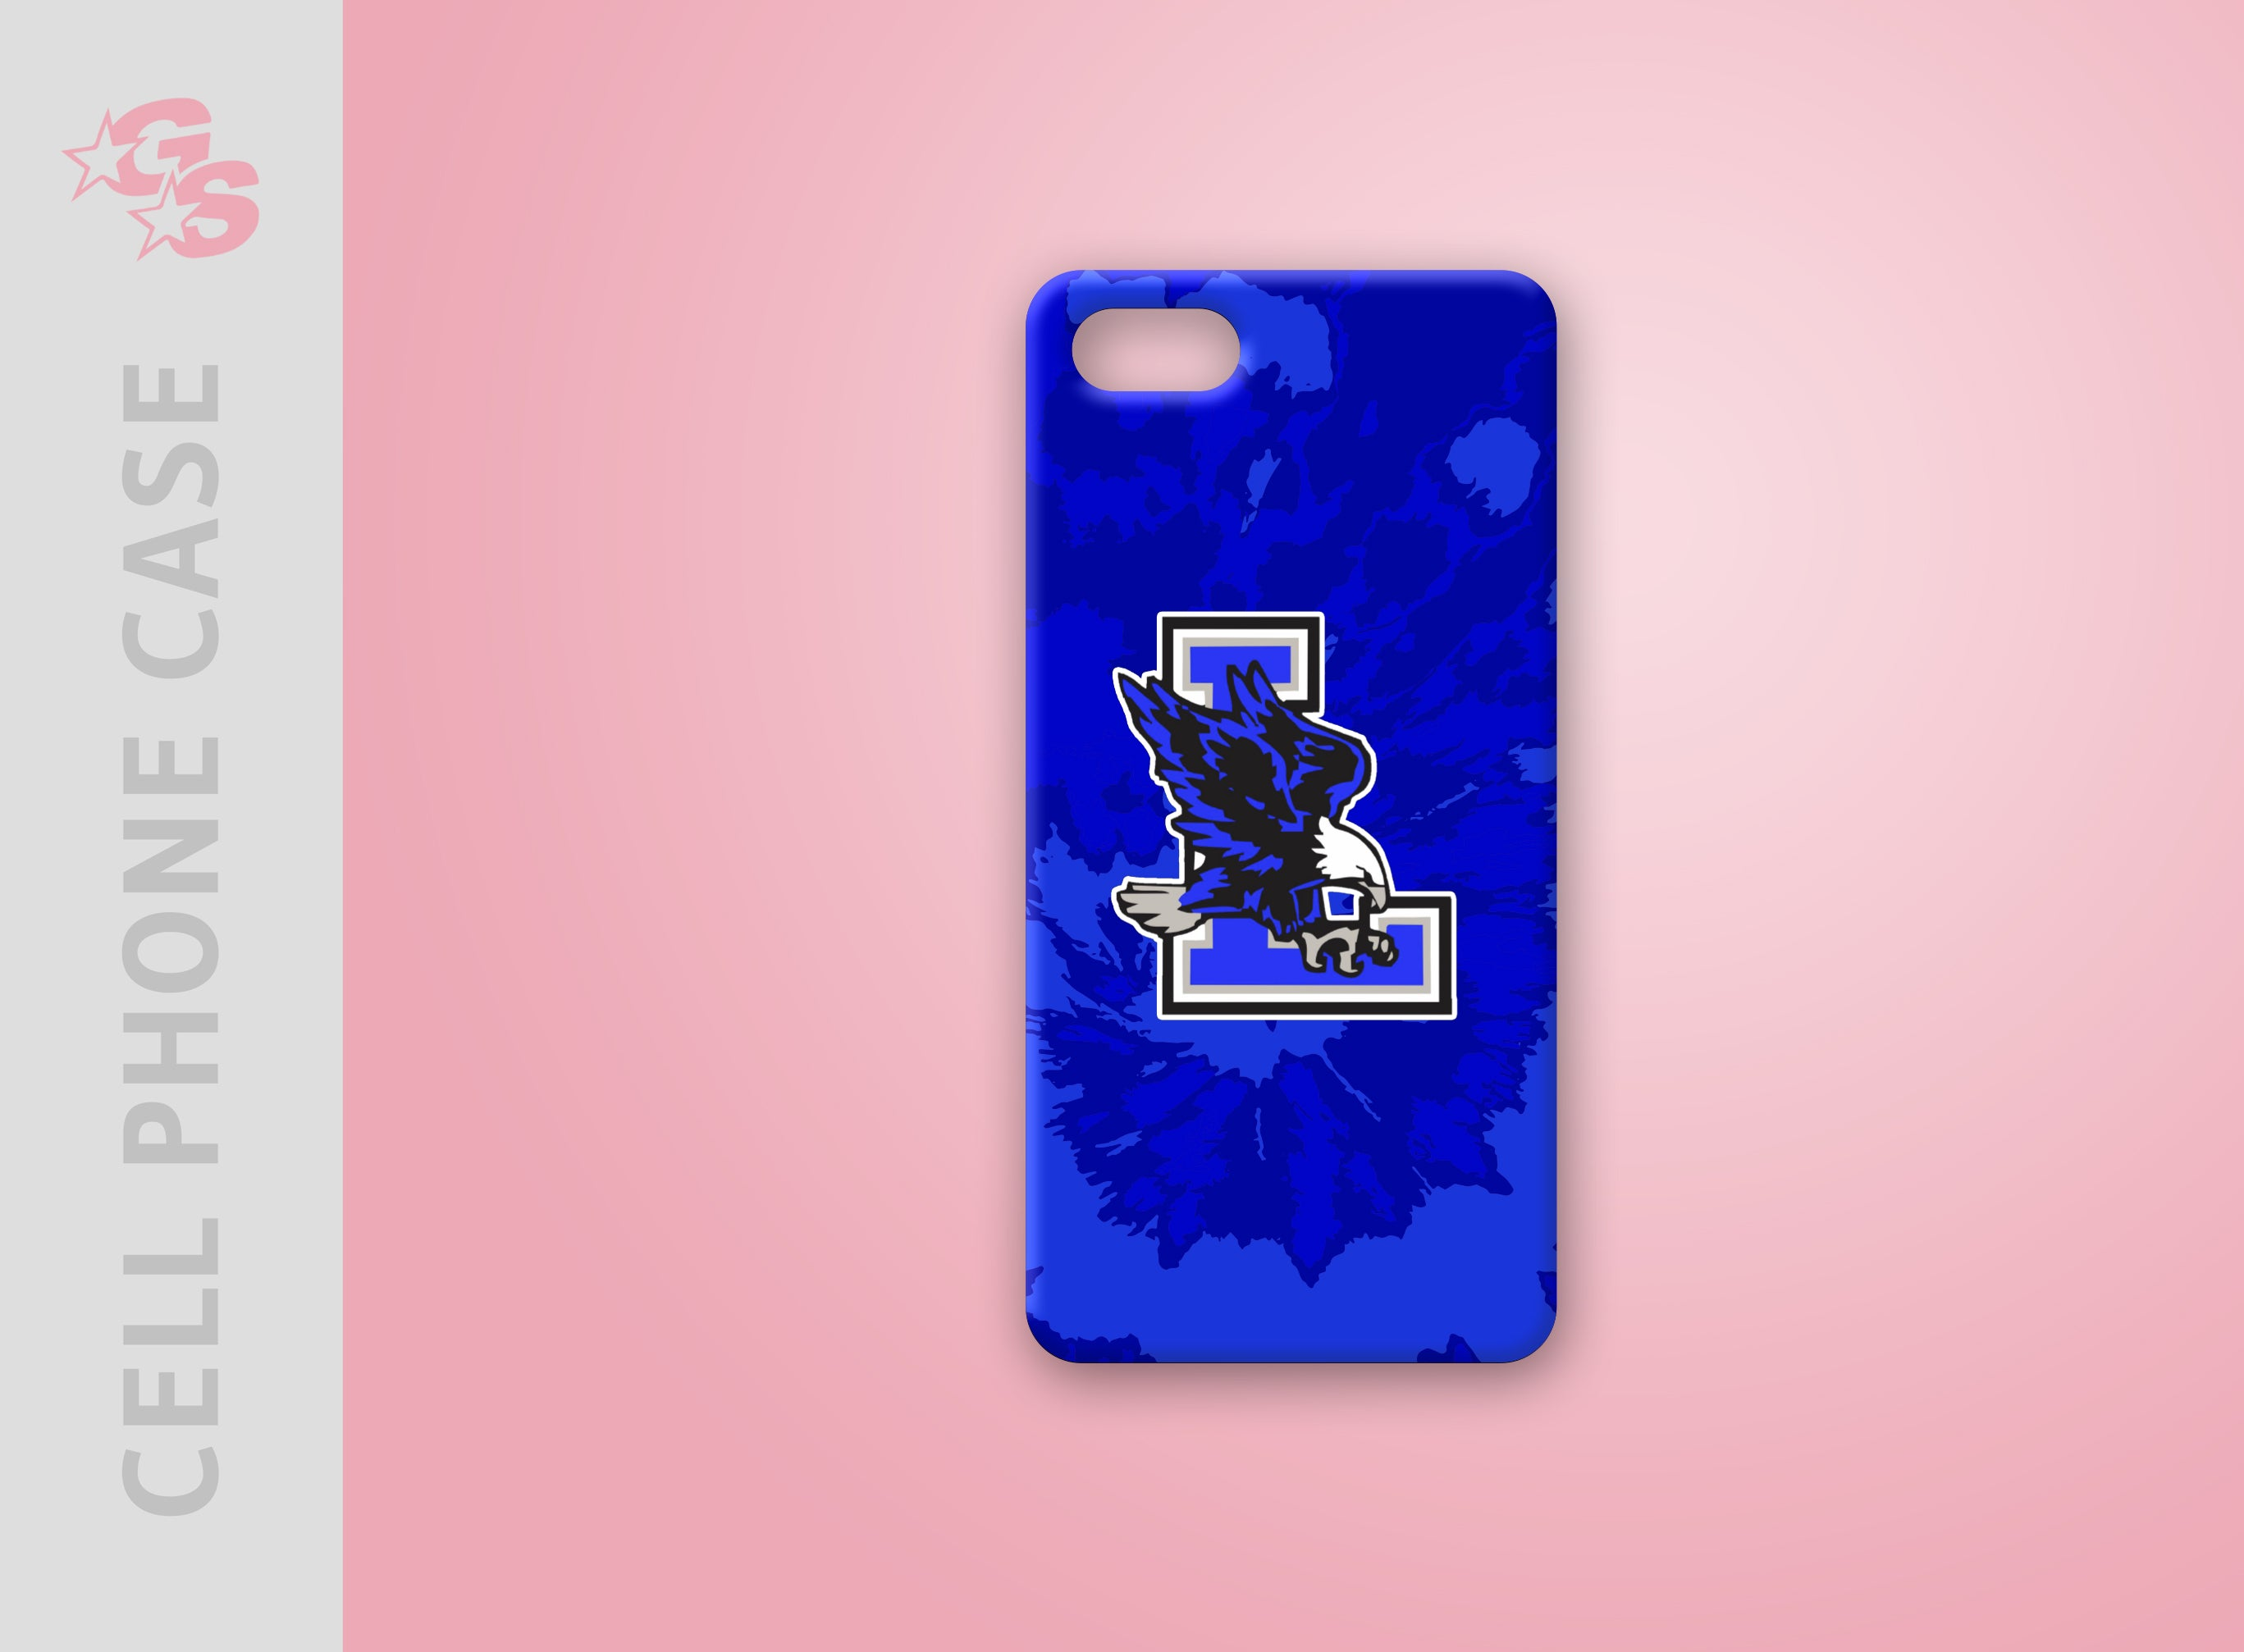 Leonardtown High School Cell Phone Case